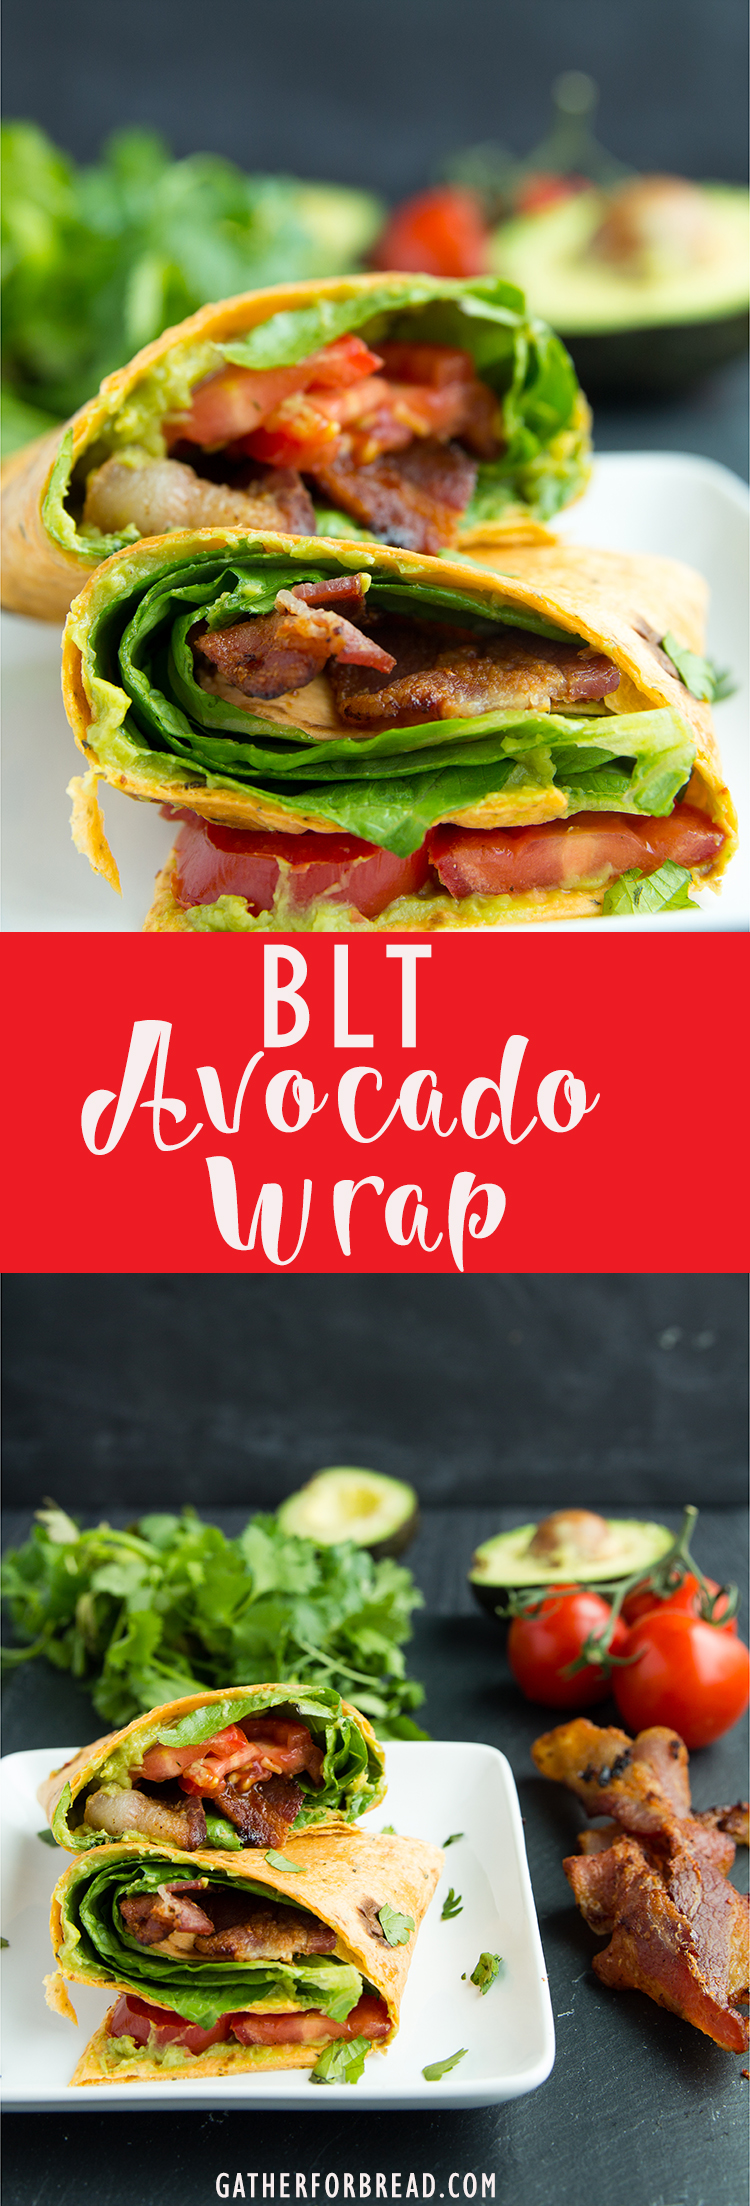 BLT Avocado Wrap - Easy , 5 ingredients guacamole blt wrap. My ...